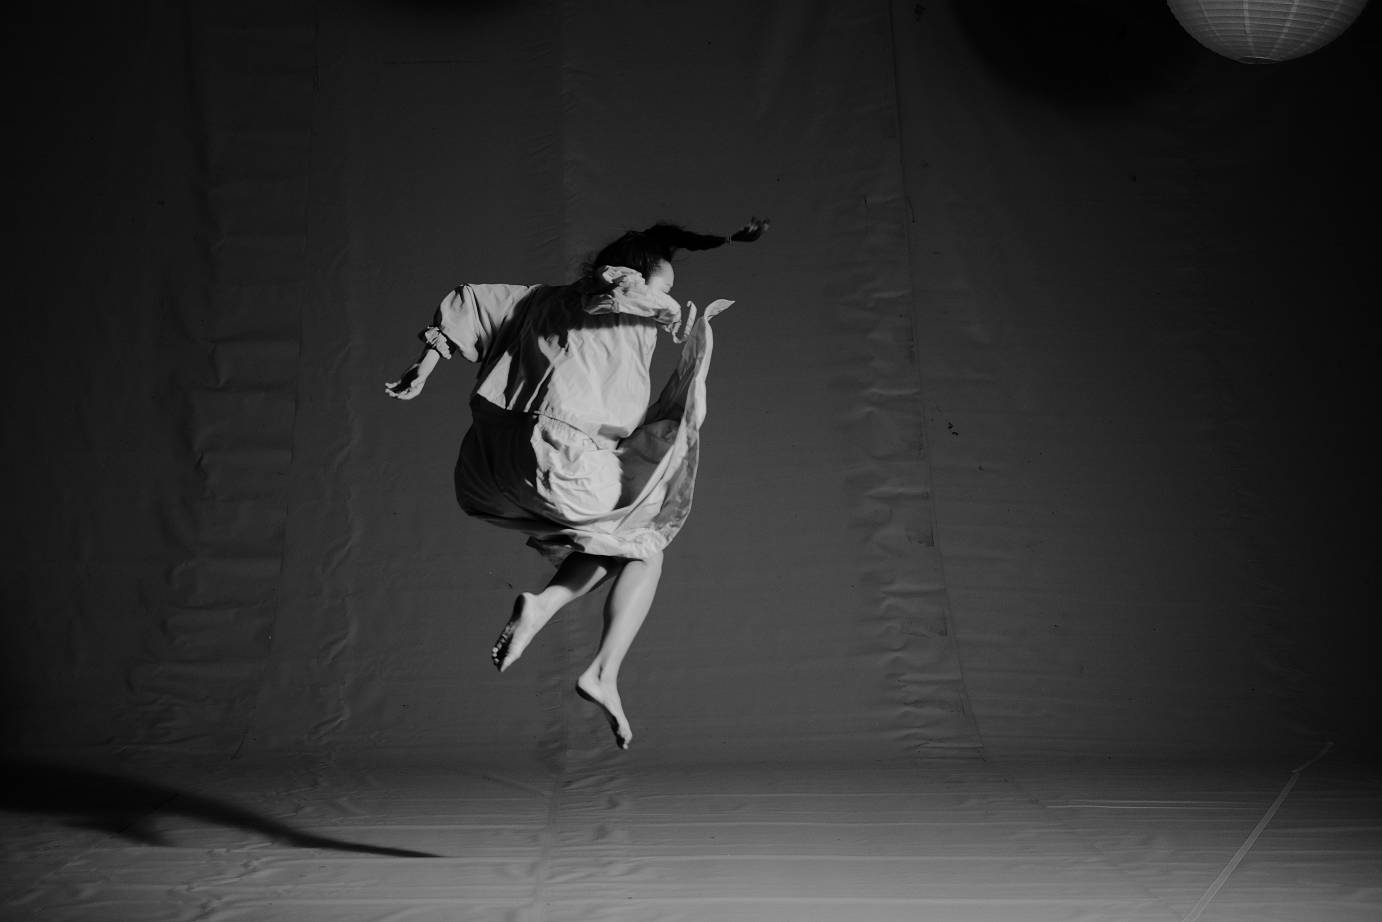 Black and white photo of a girl jumping